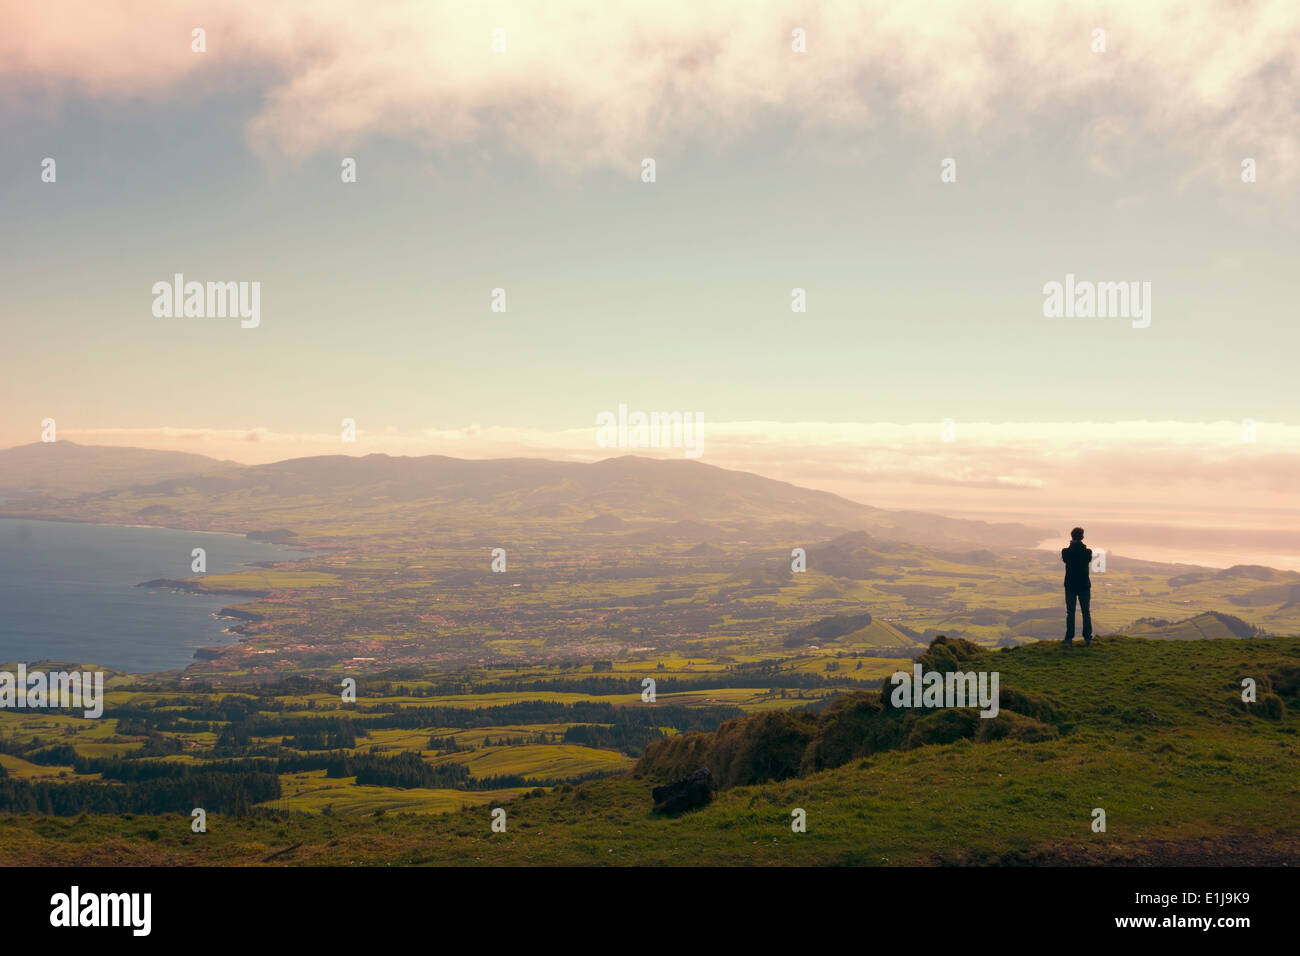 Portugal, Azores,Sao Miguel, Tourist capturing view - Stock Image